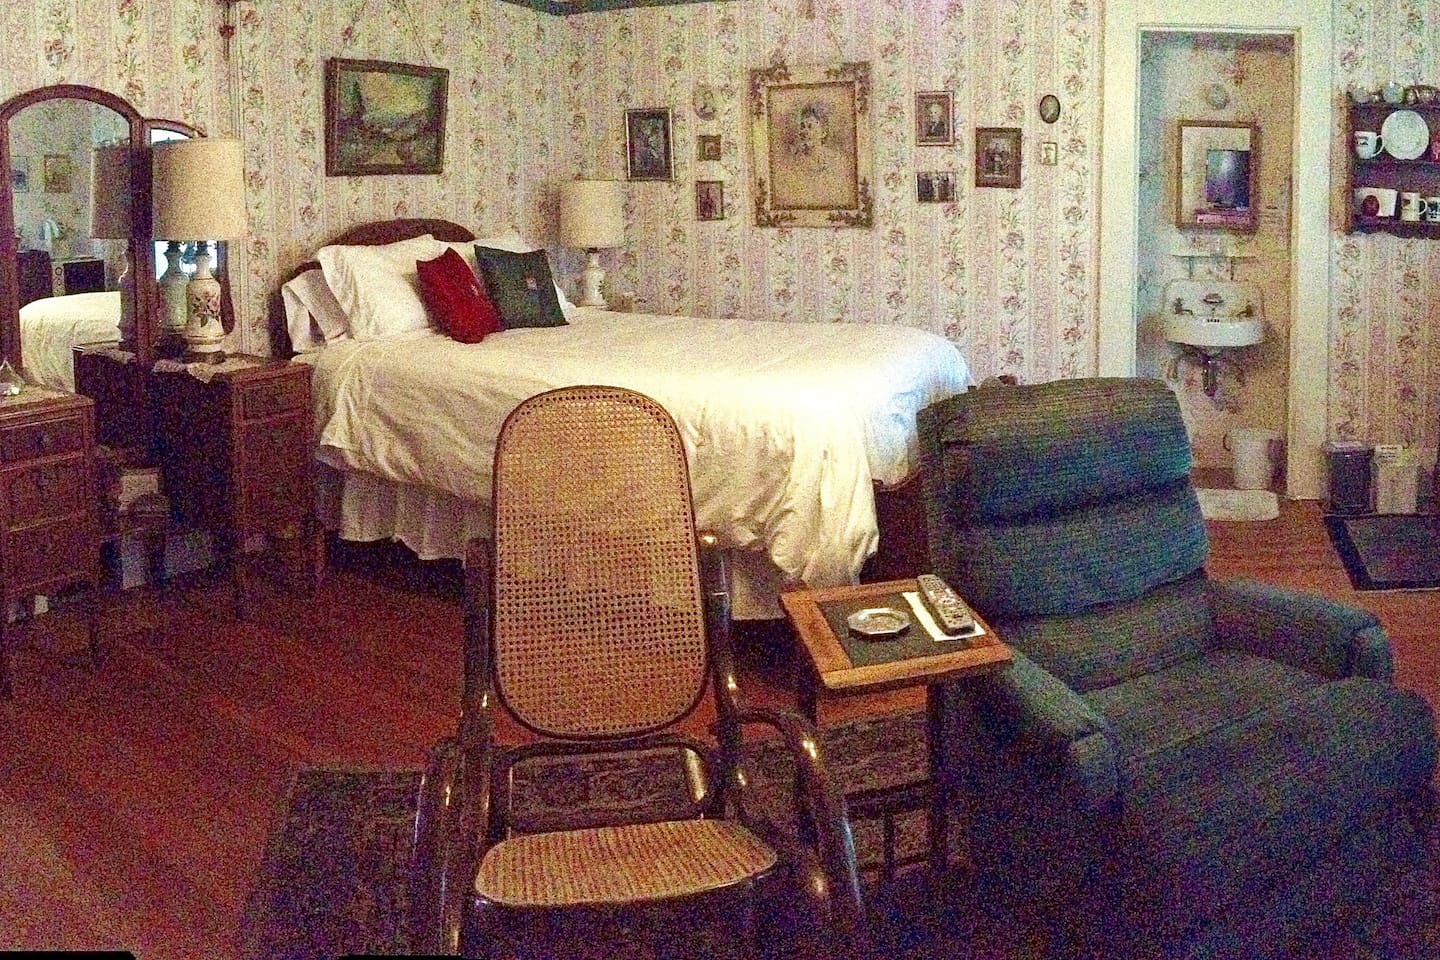 This is our Heritage Room with furniture and pictures of our family.